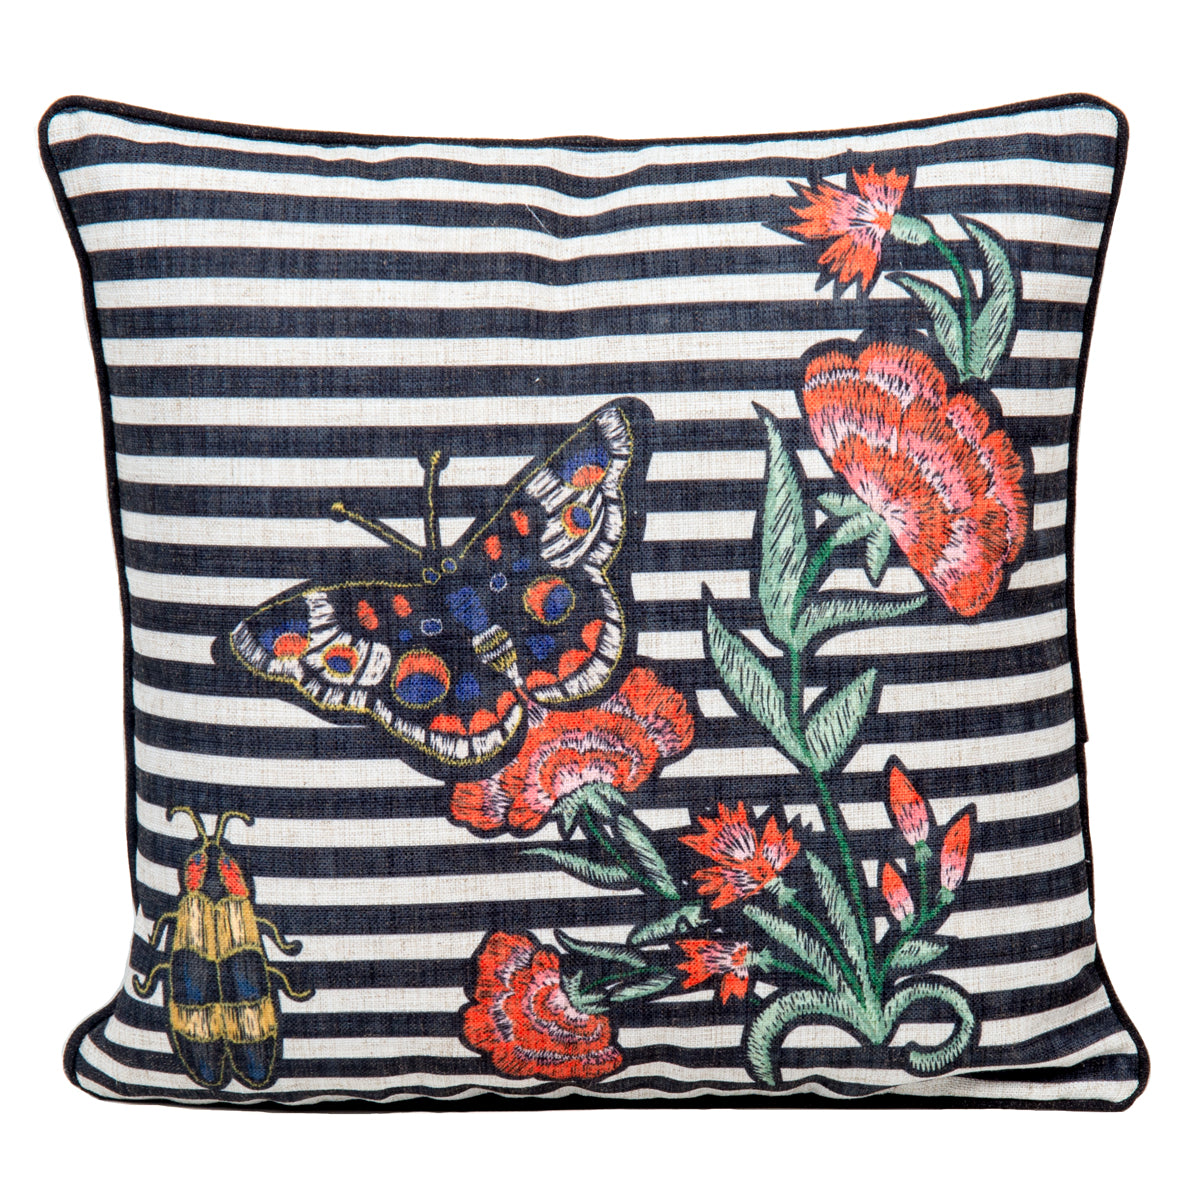 Black and white striped throw pillow with colorful butterflies and red flowers embroidered on the front.